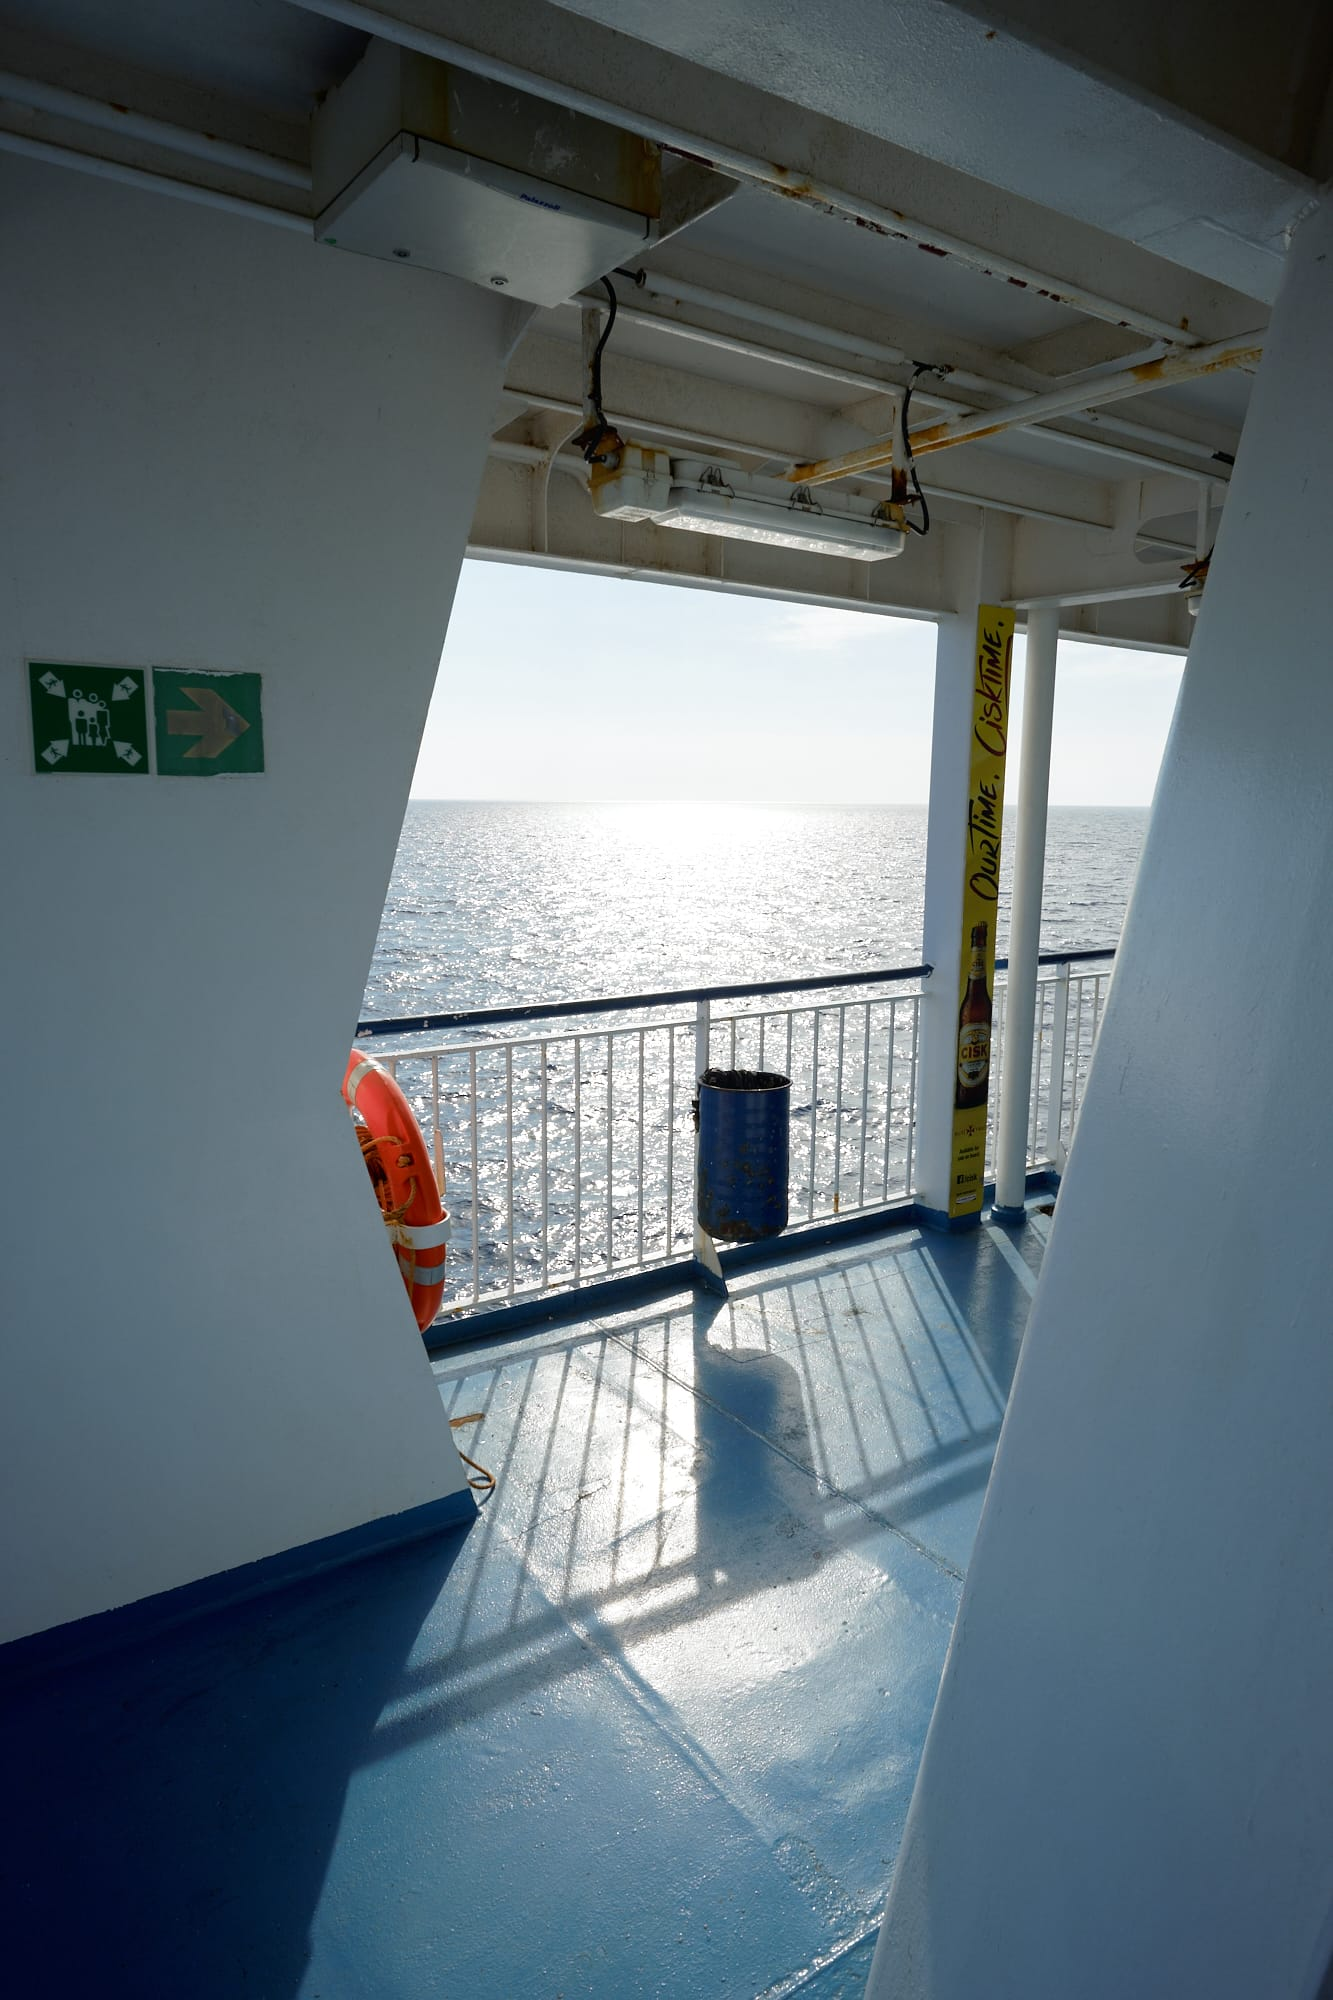 looking out over the side of the ferry towards the sun